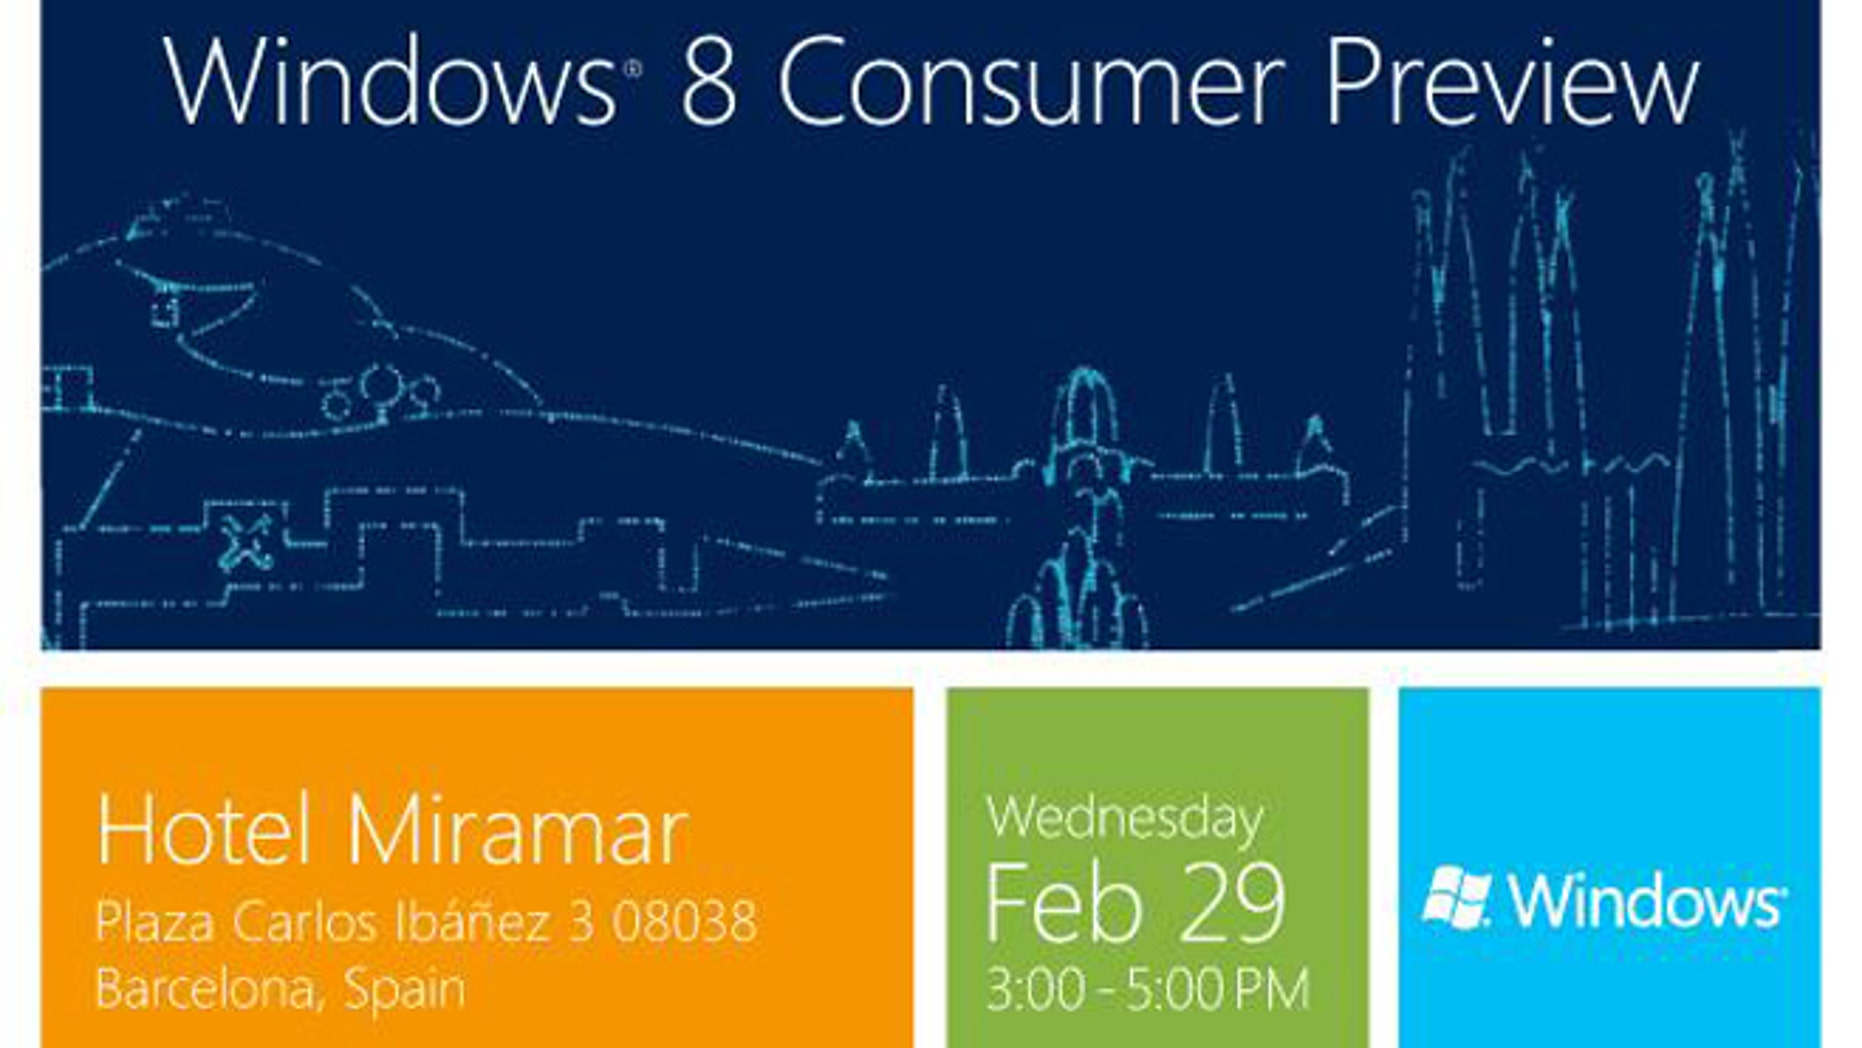 An invitation to Microsoft's Windows 8 Consumer Preview event in Barcelona.